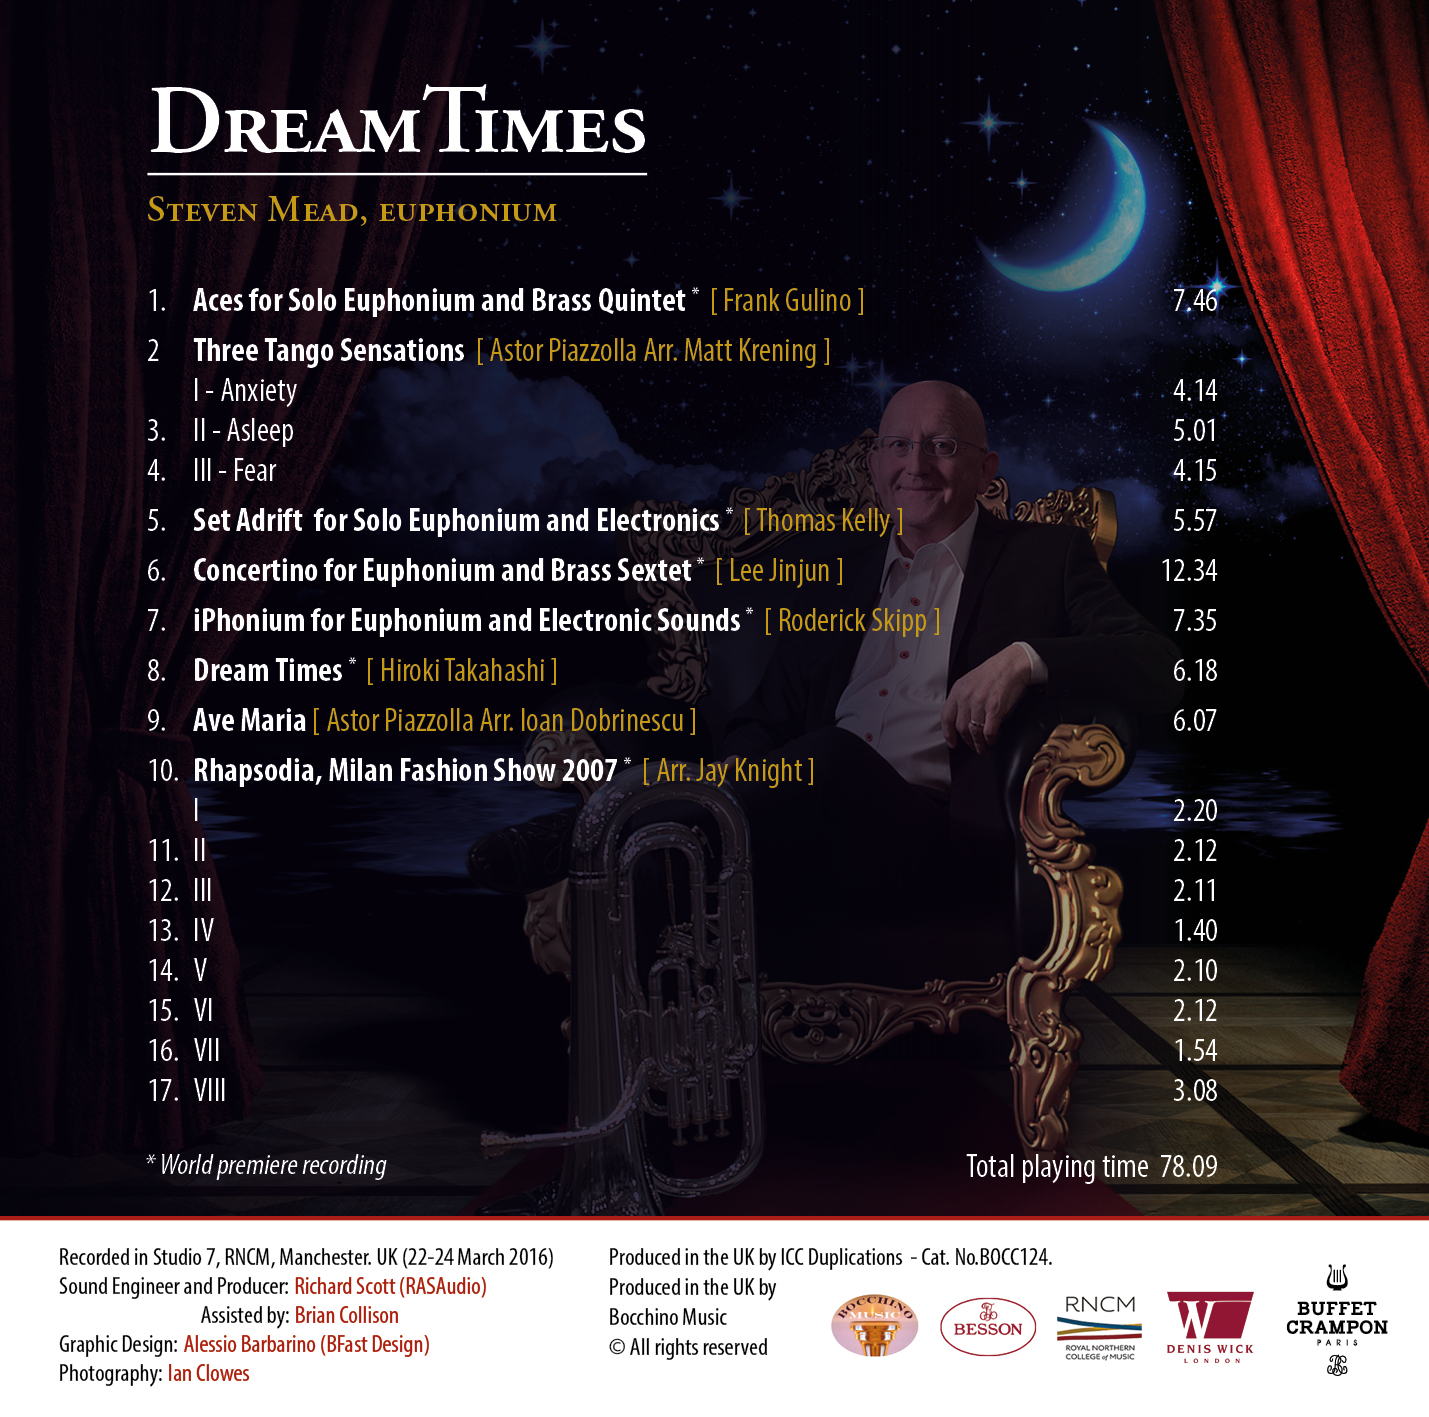 Dream Times track list